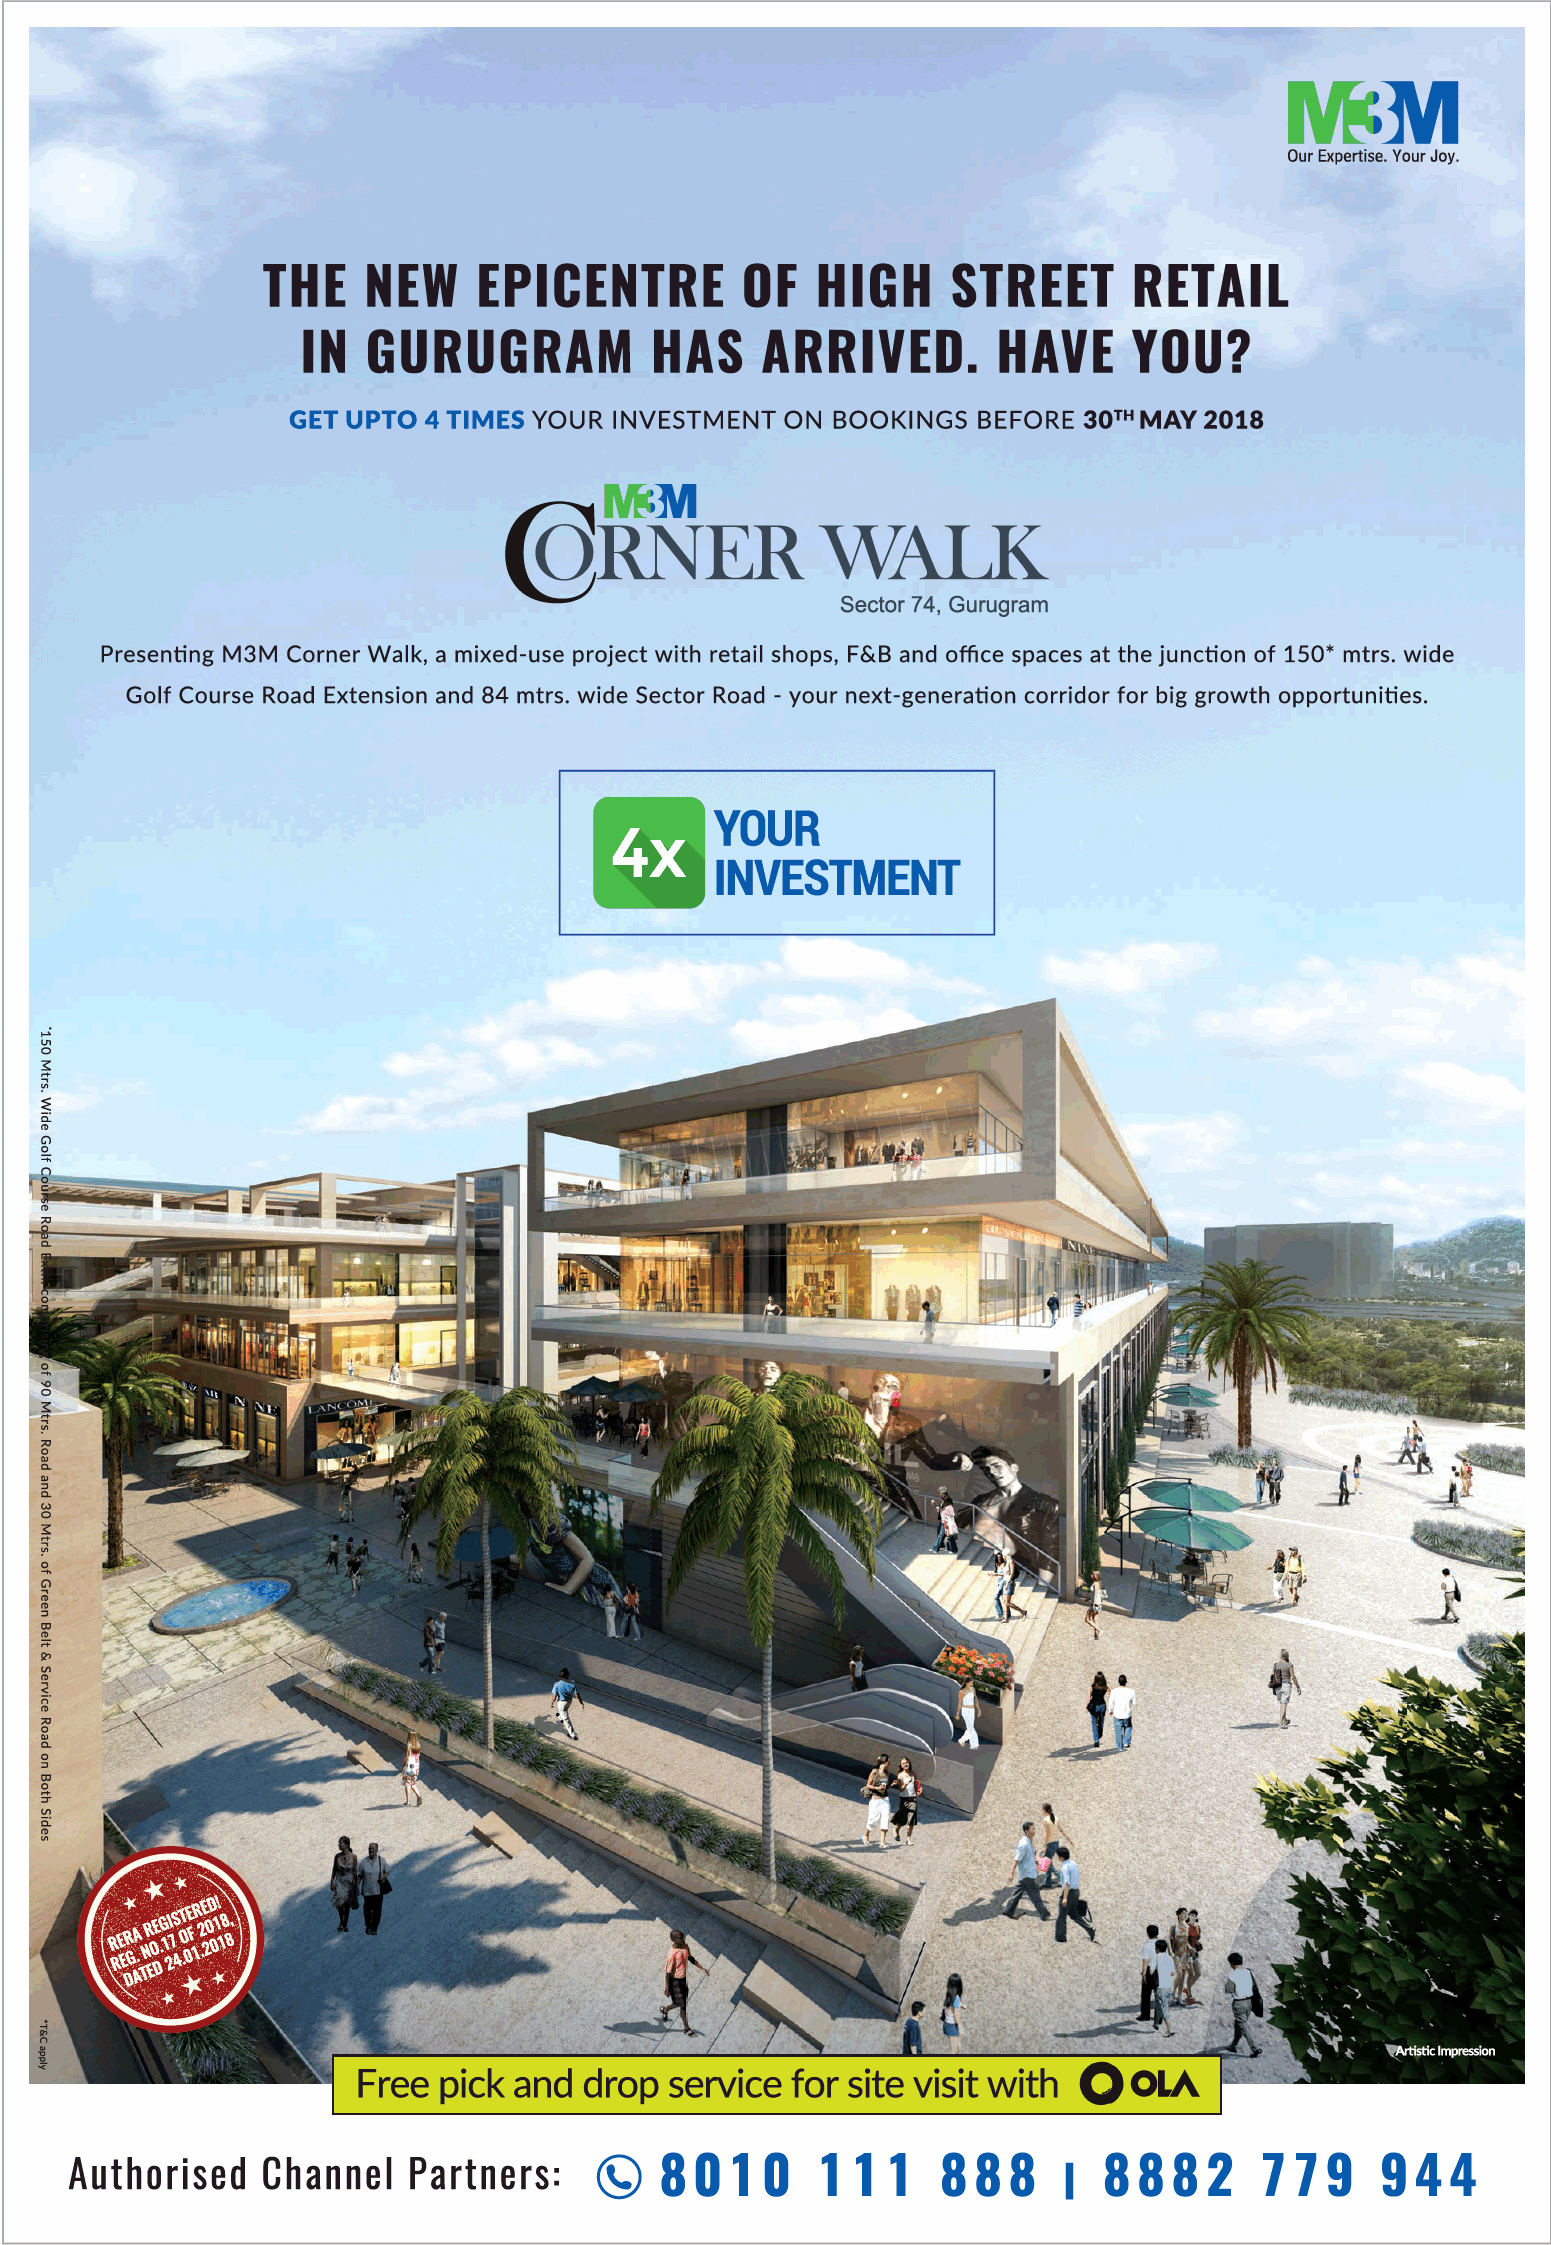 M3M The New Epicenter Of High Street Retail In Gurugram Has Arrived Have You Ad